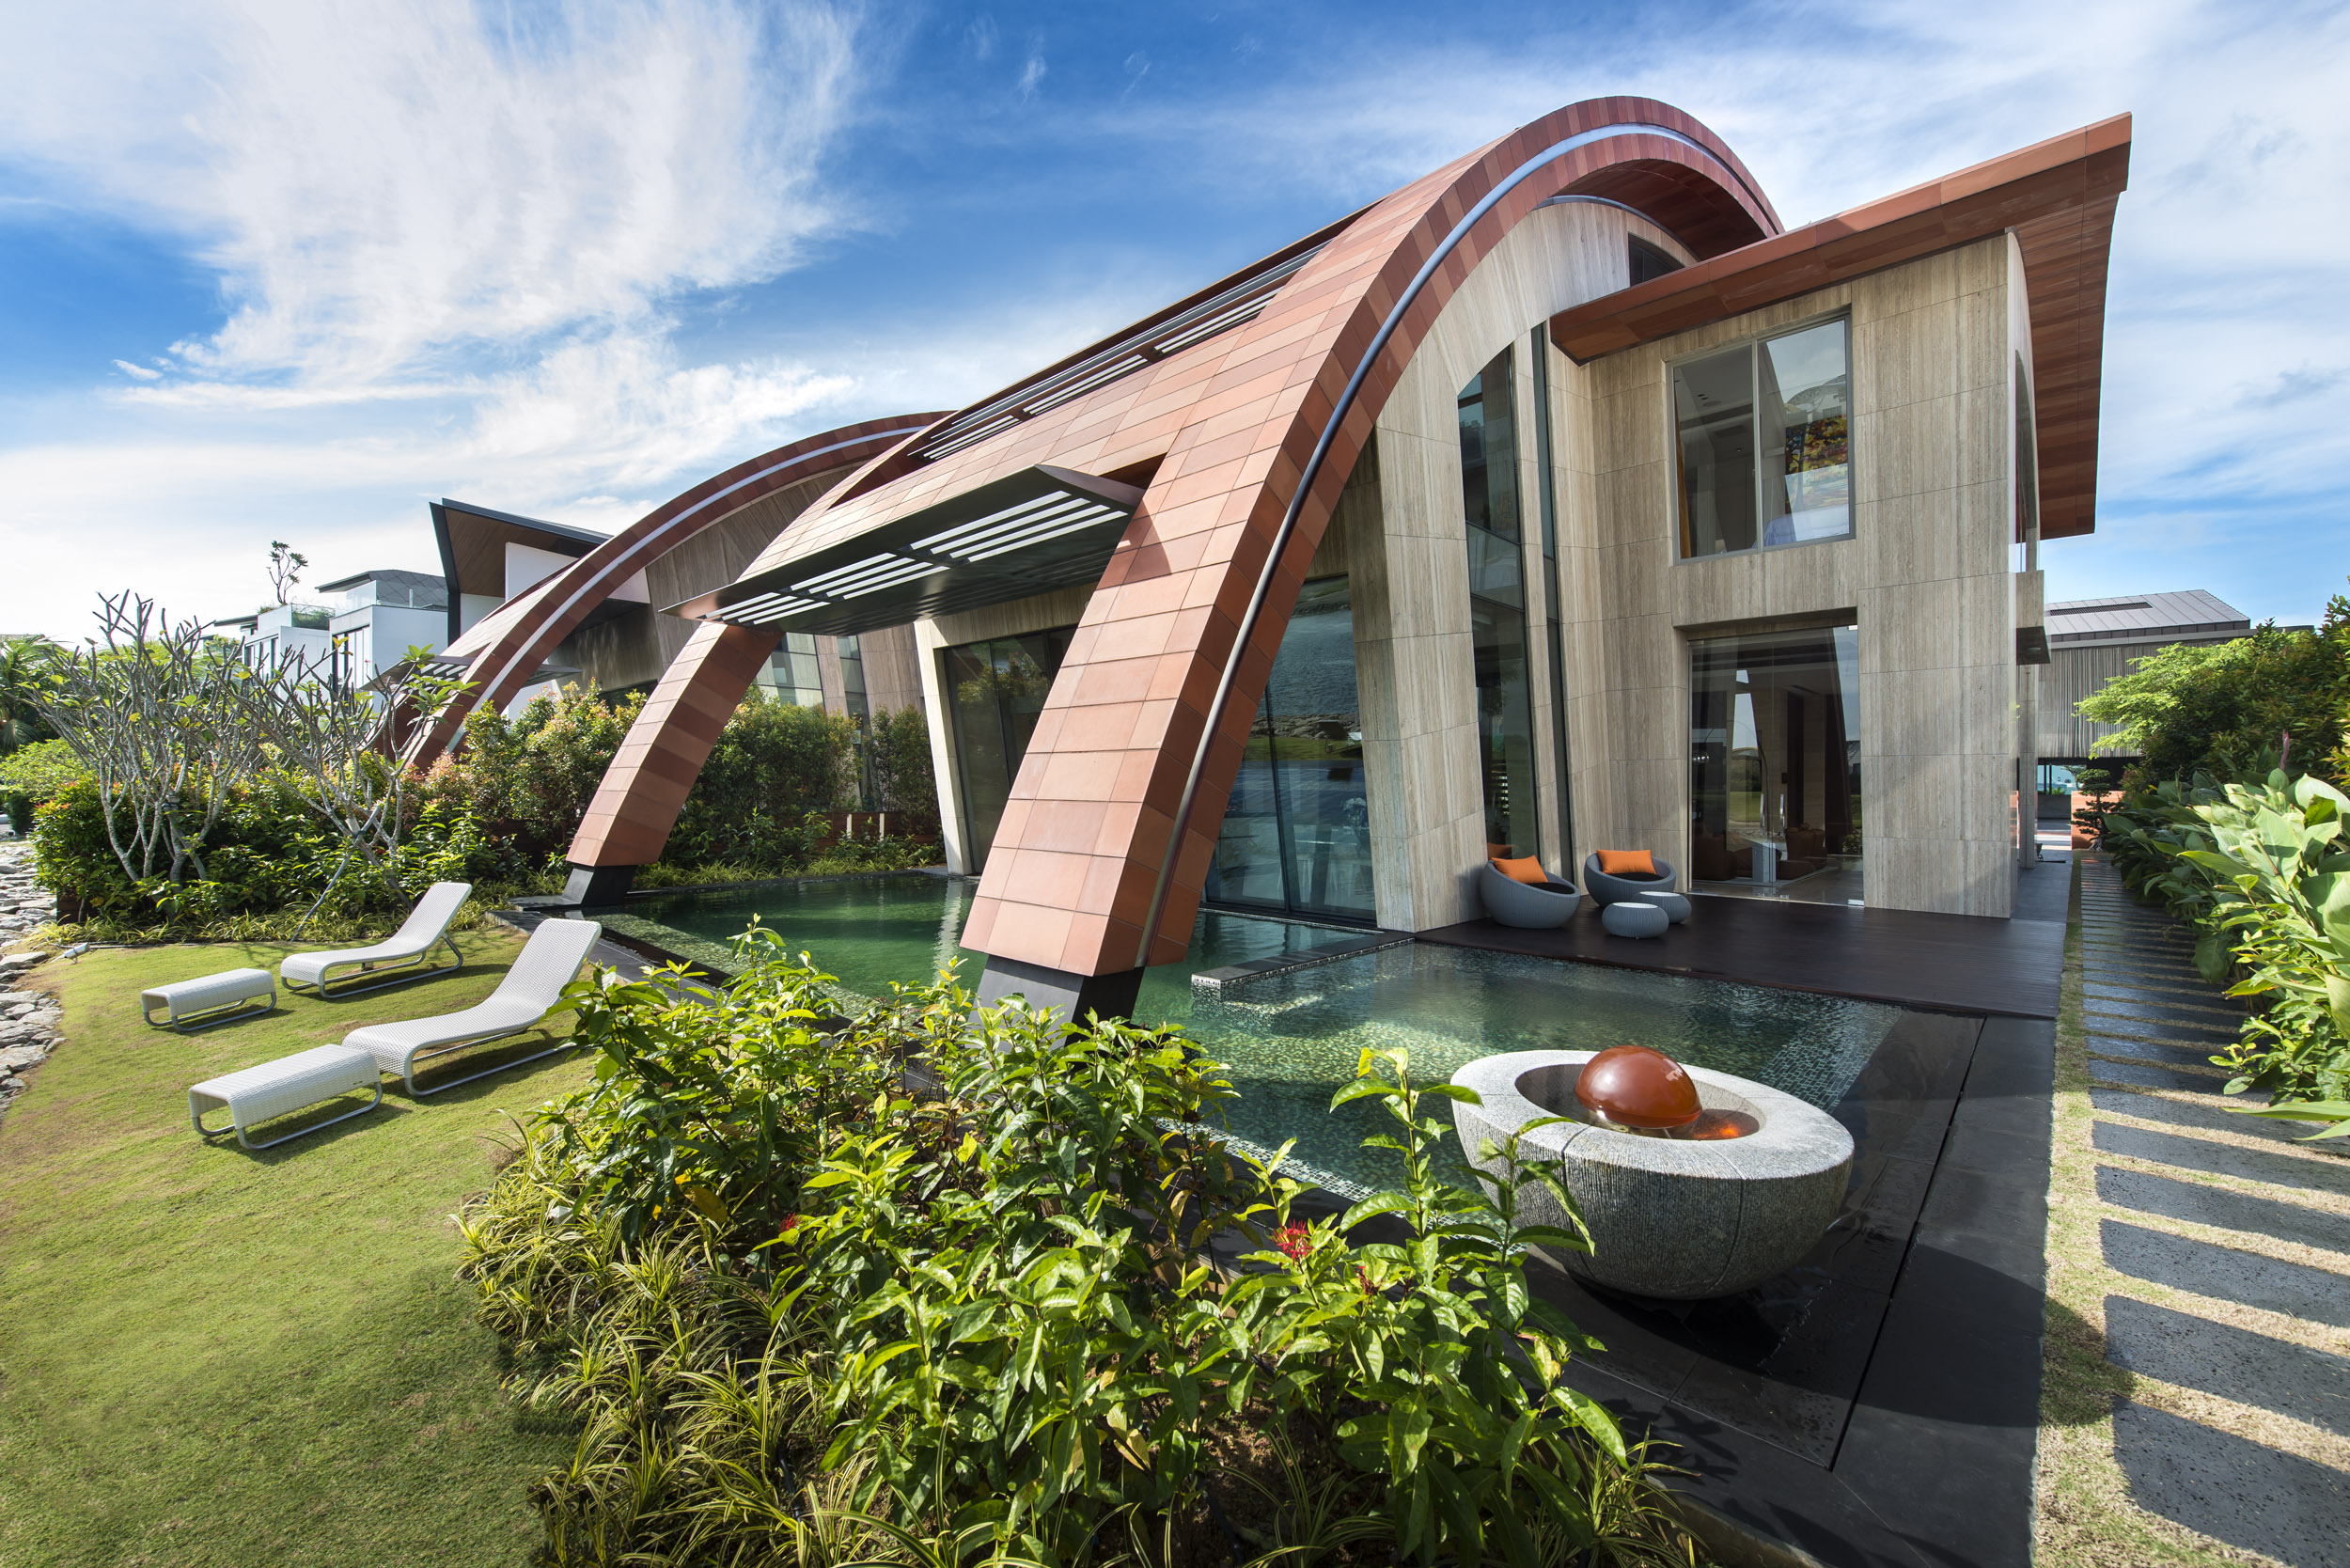 Villa alba architect magazine singapore singapore for Villa architect